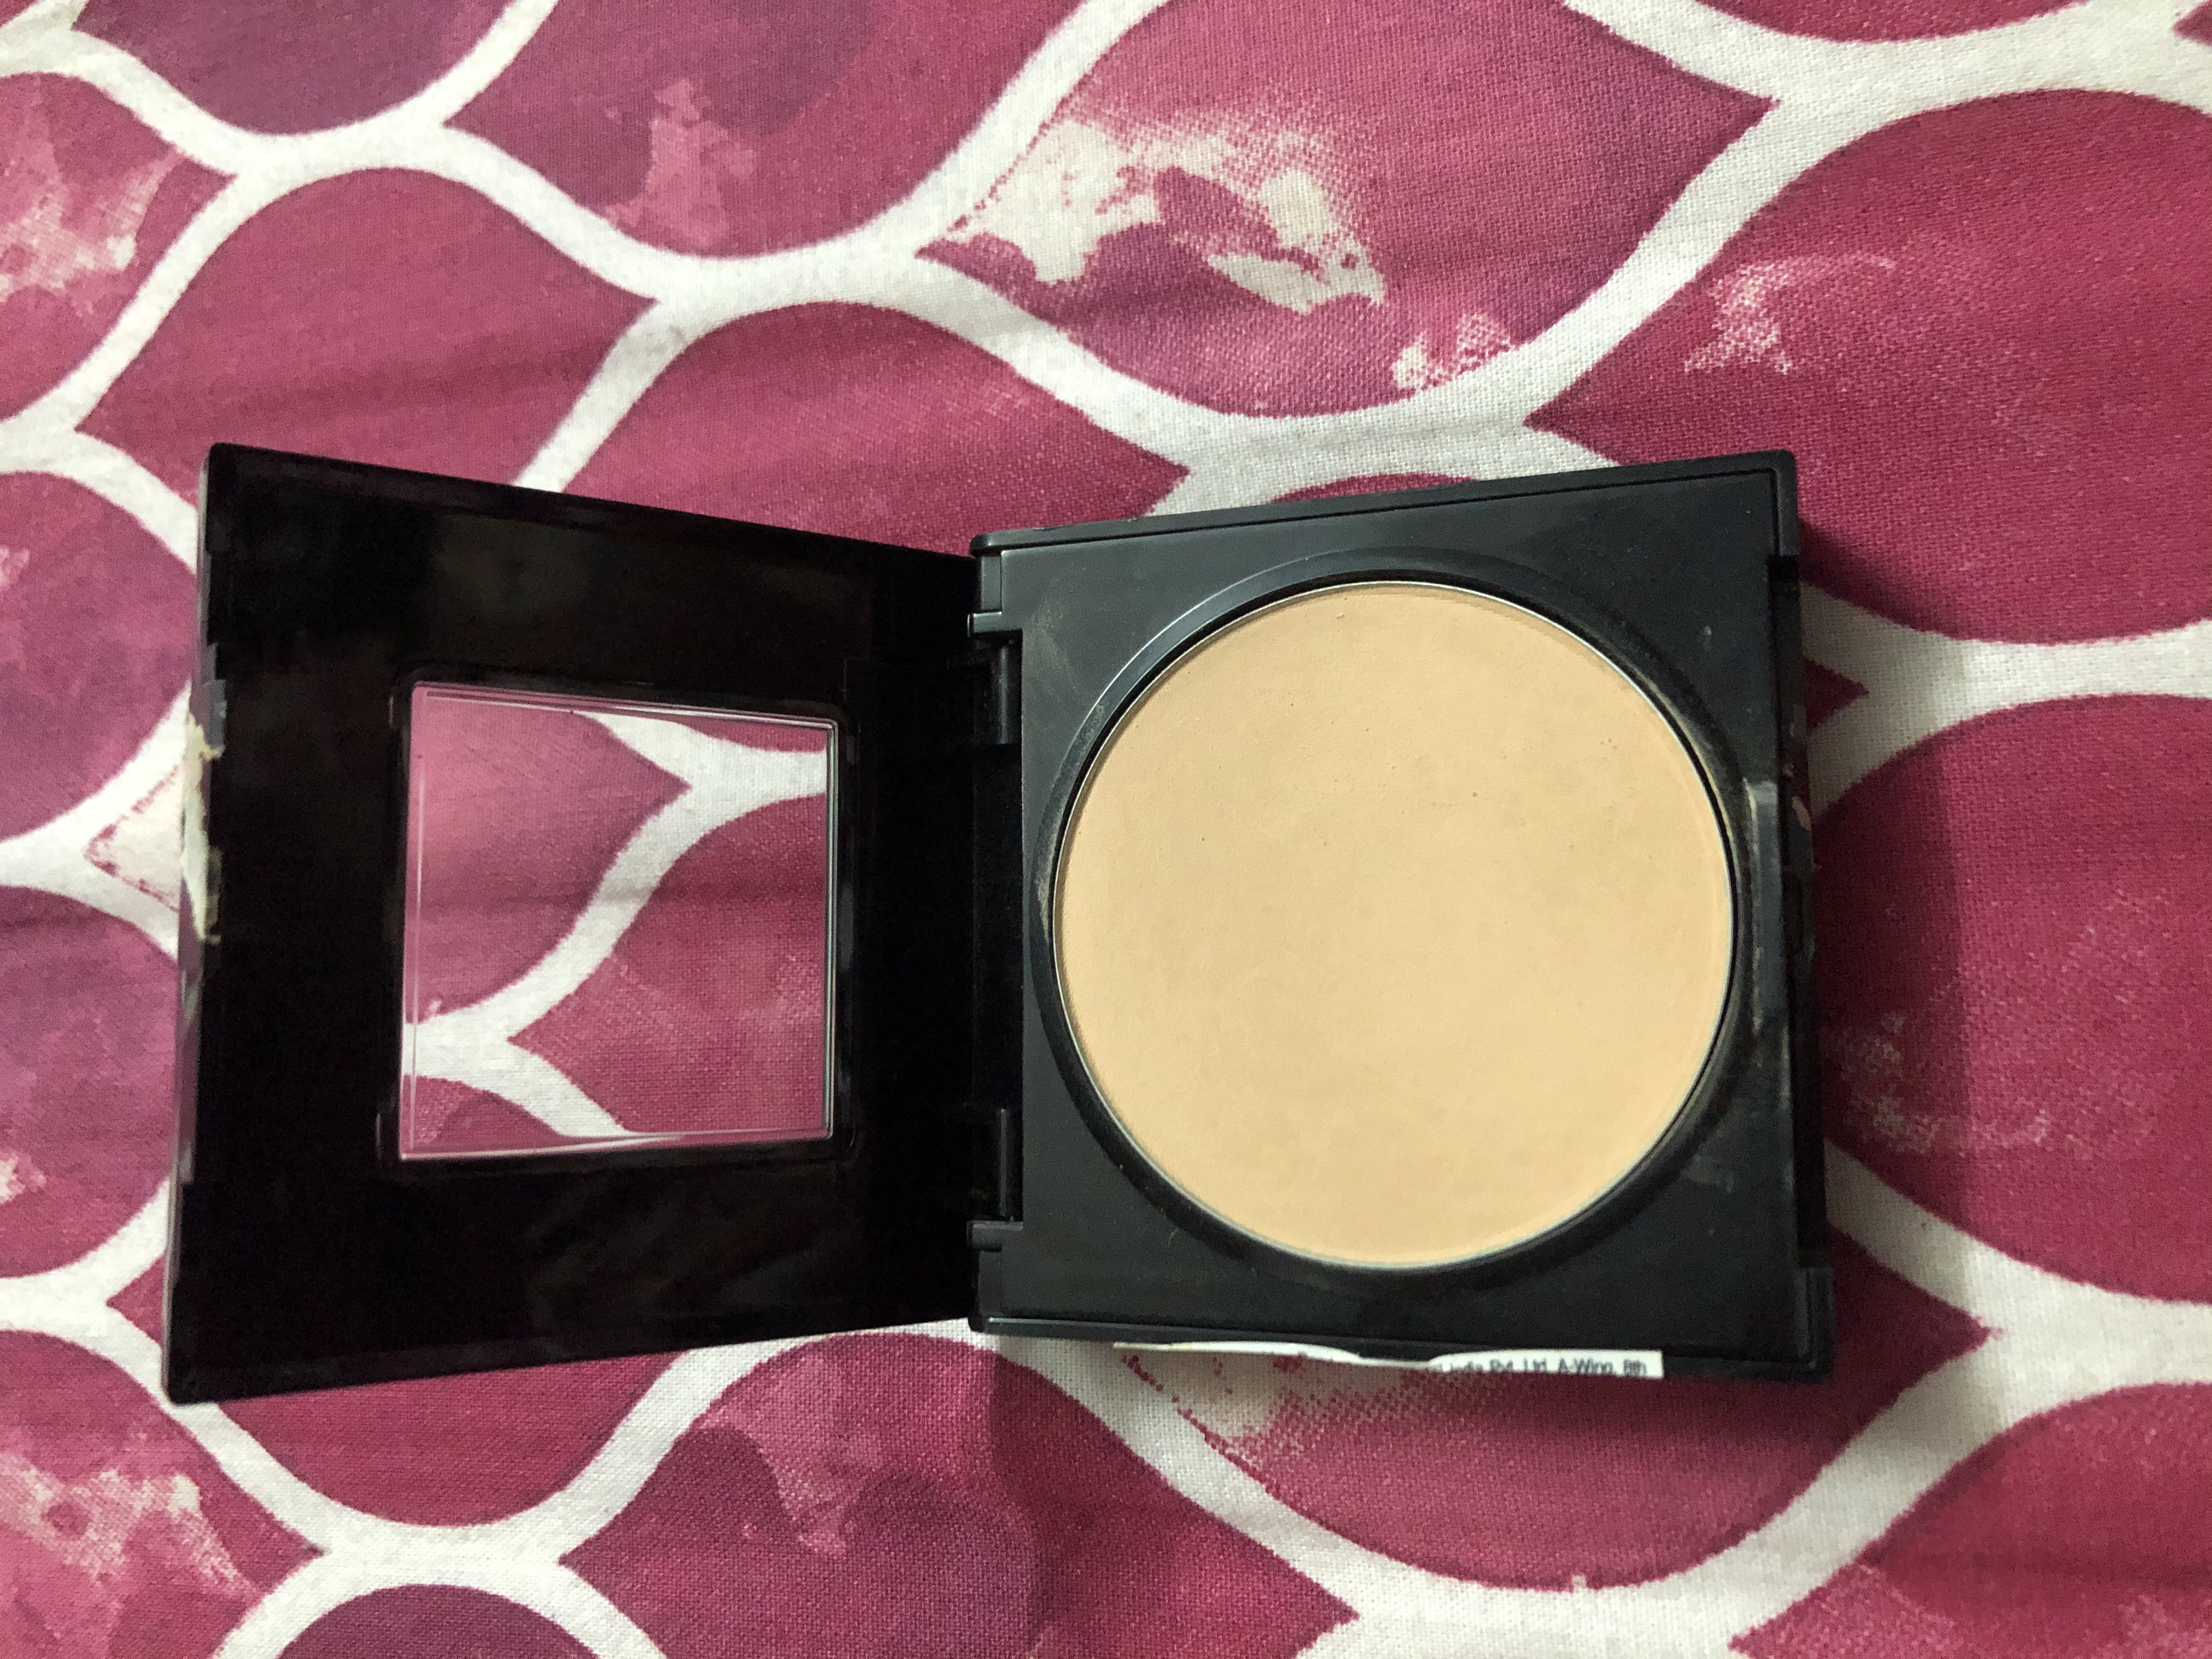 Maybelline Fit Me Matte And Poreless Powder-Best compressed compact from maybelline fit me range..-By divyakiran-2